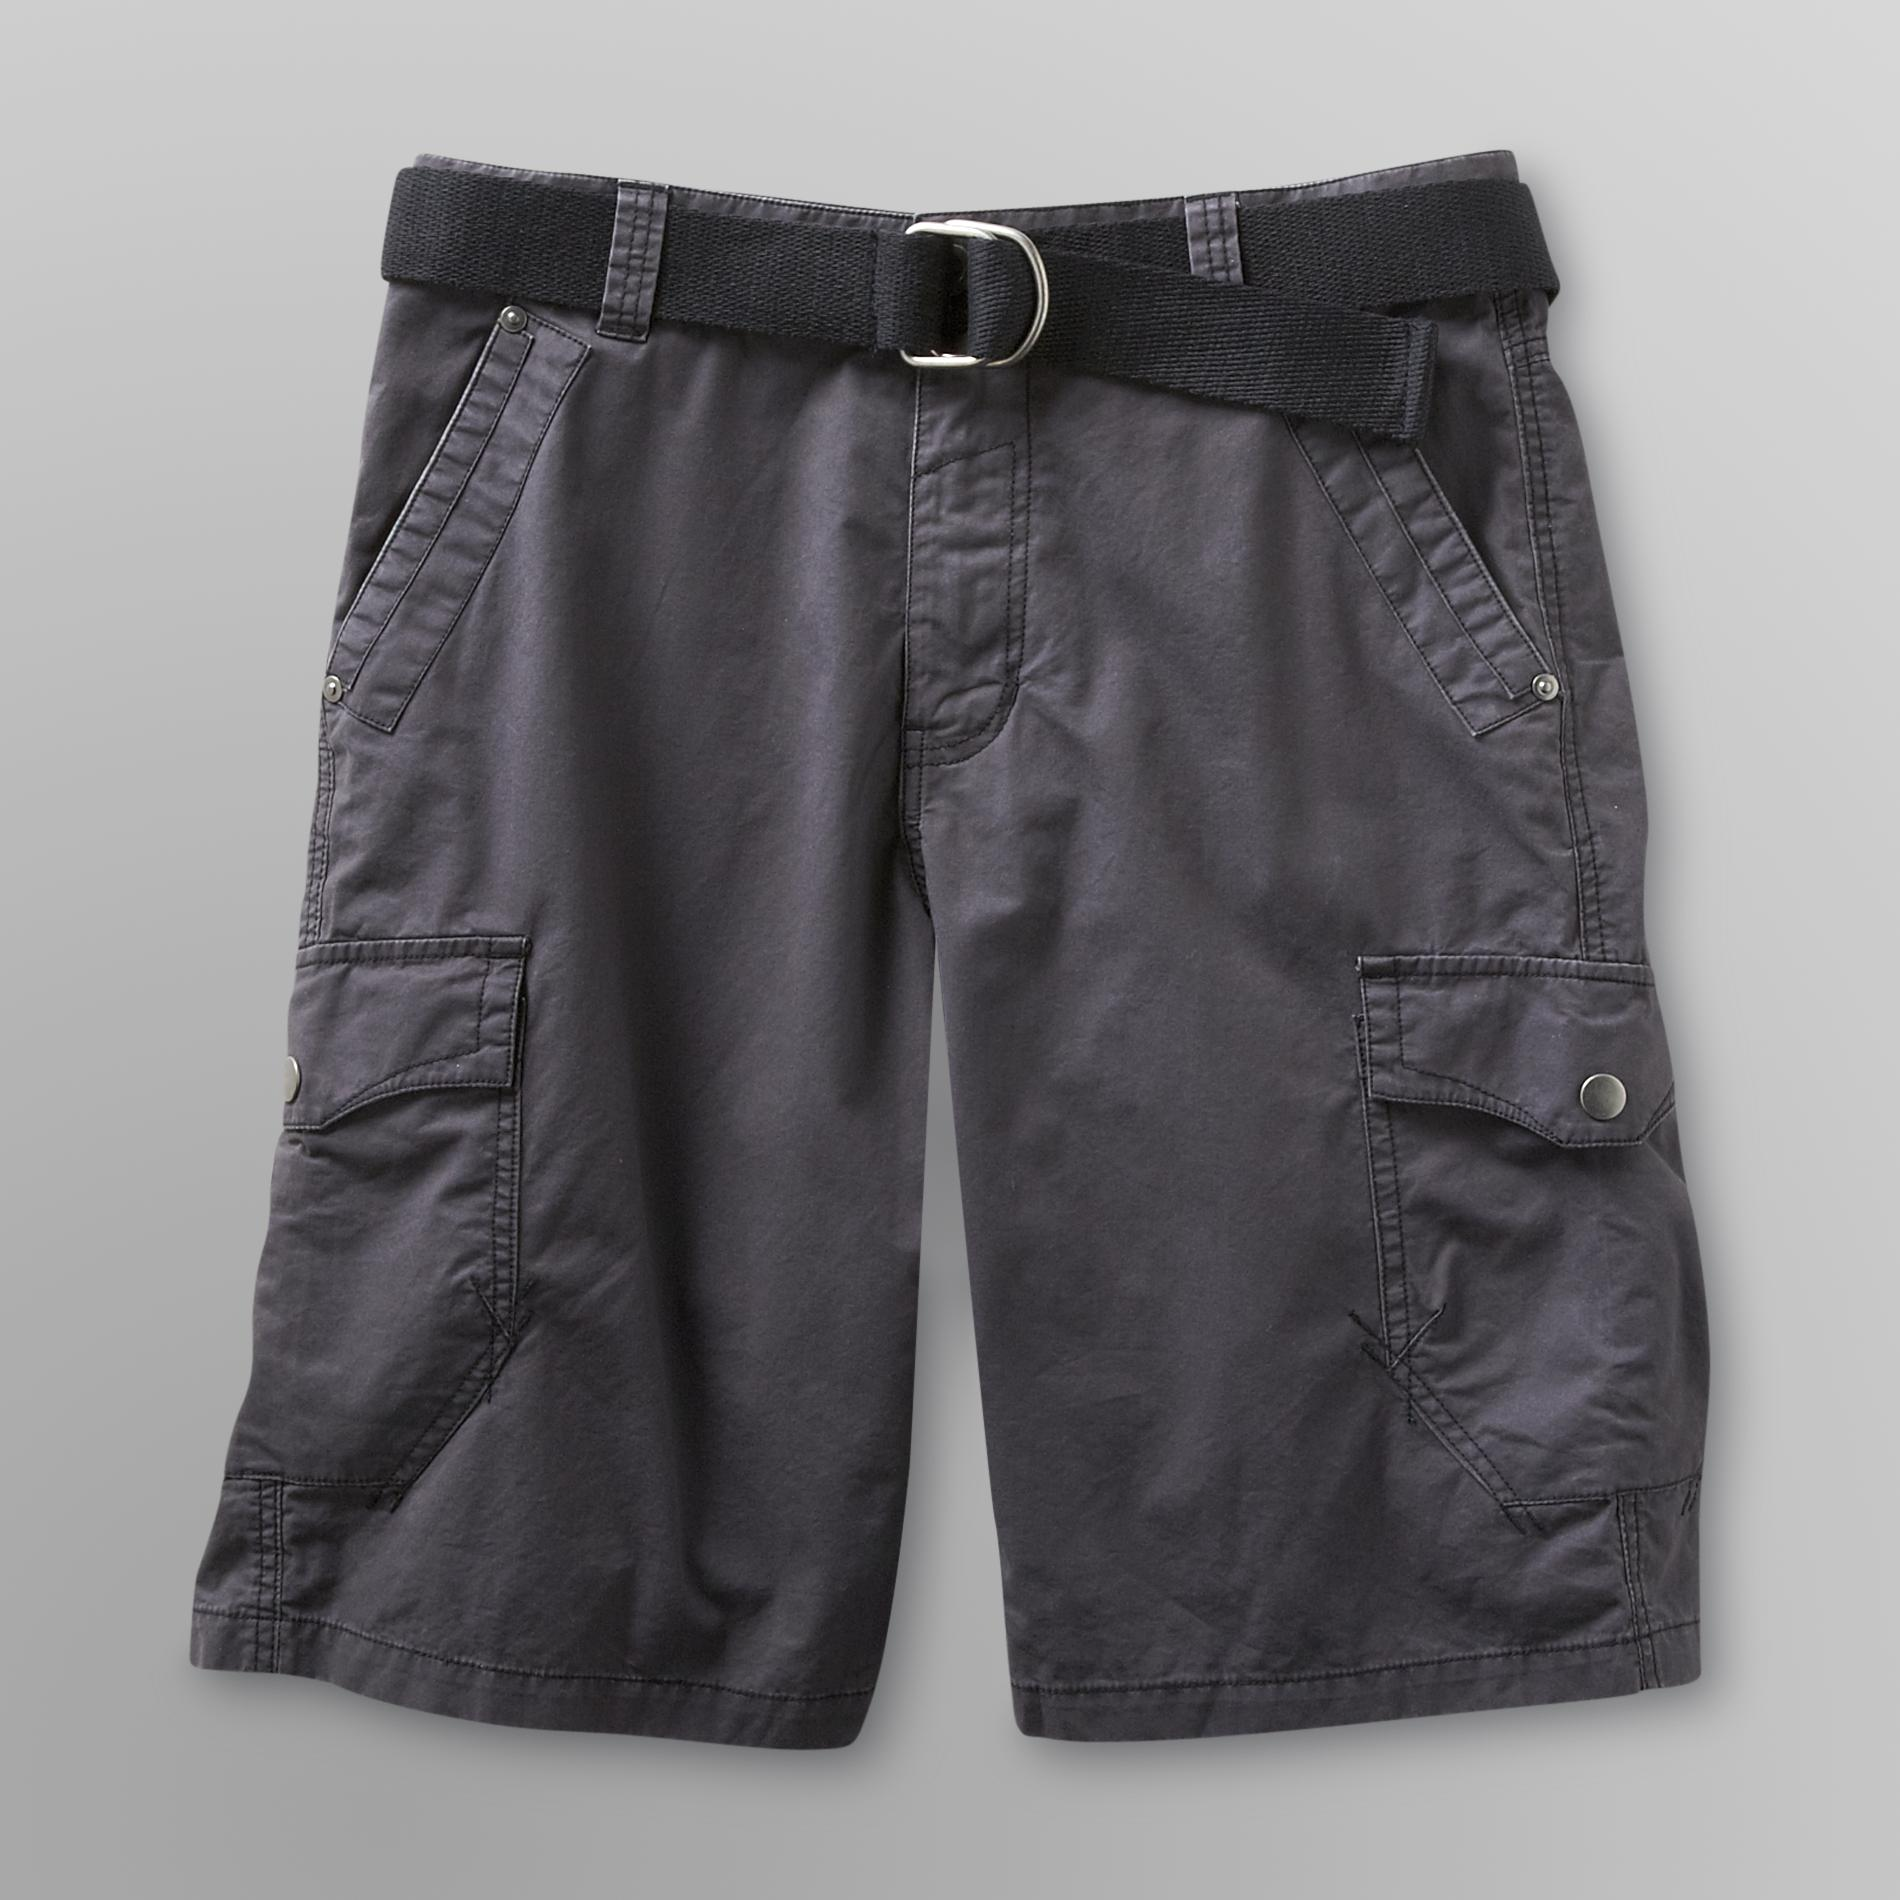 Route 66 Men's Belted Cargo Shorts - Crosses at Kmart.com